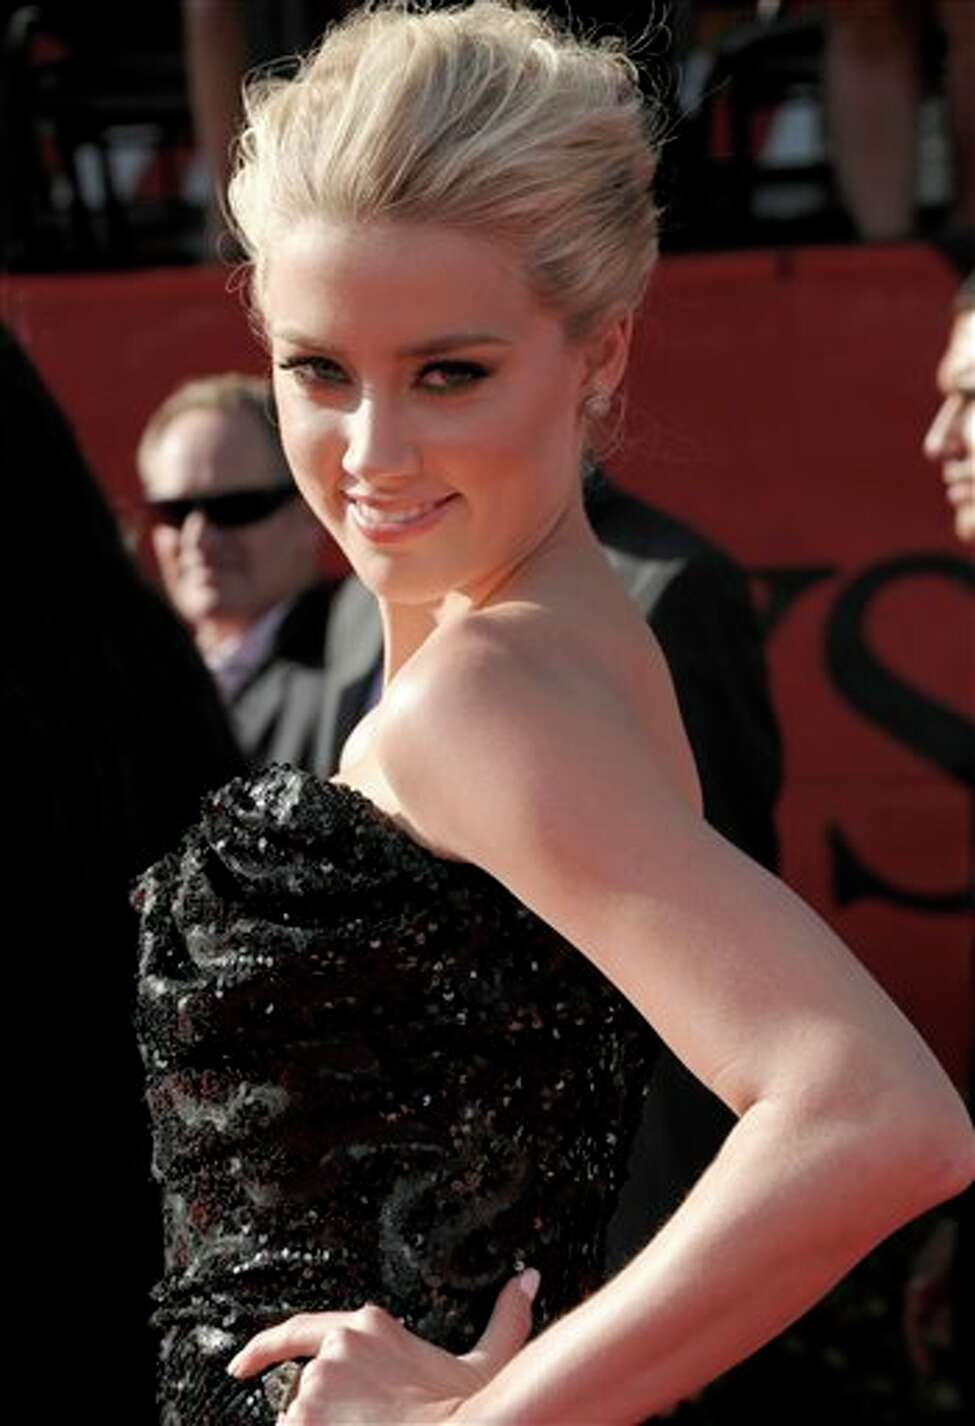 Actress Amber Heard arrives at the ESPY awards on Wednesday, July 13, 2011, in Los Angeles. (AP Photo/Dan Steinberg)